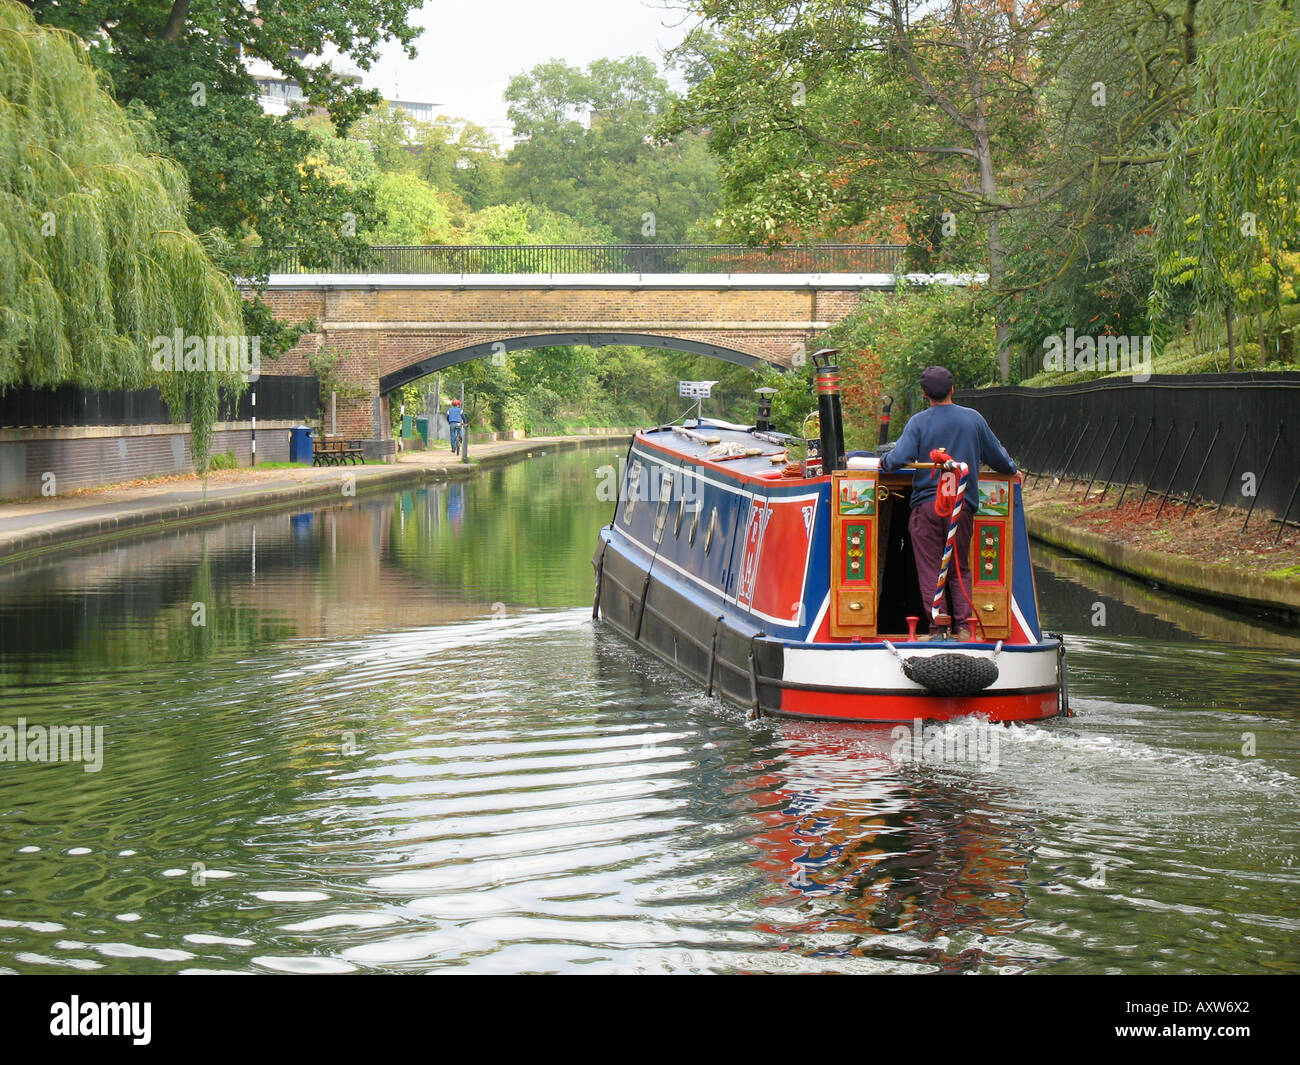 A man steers a narrowboat on the Regents Canal London England - Stock Image